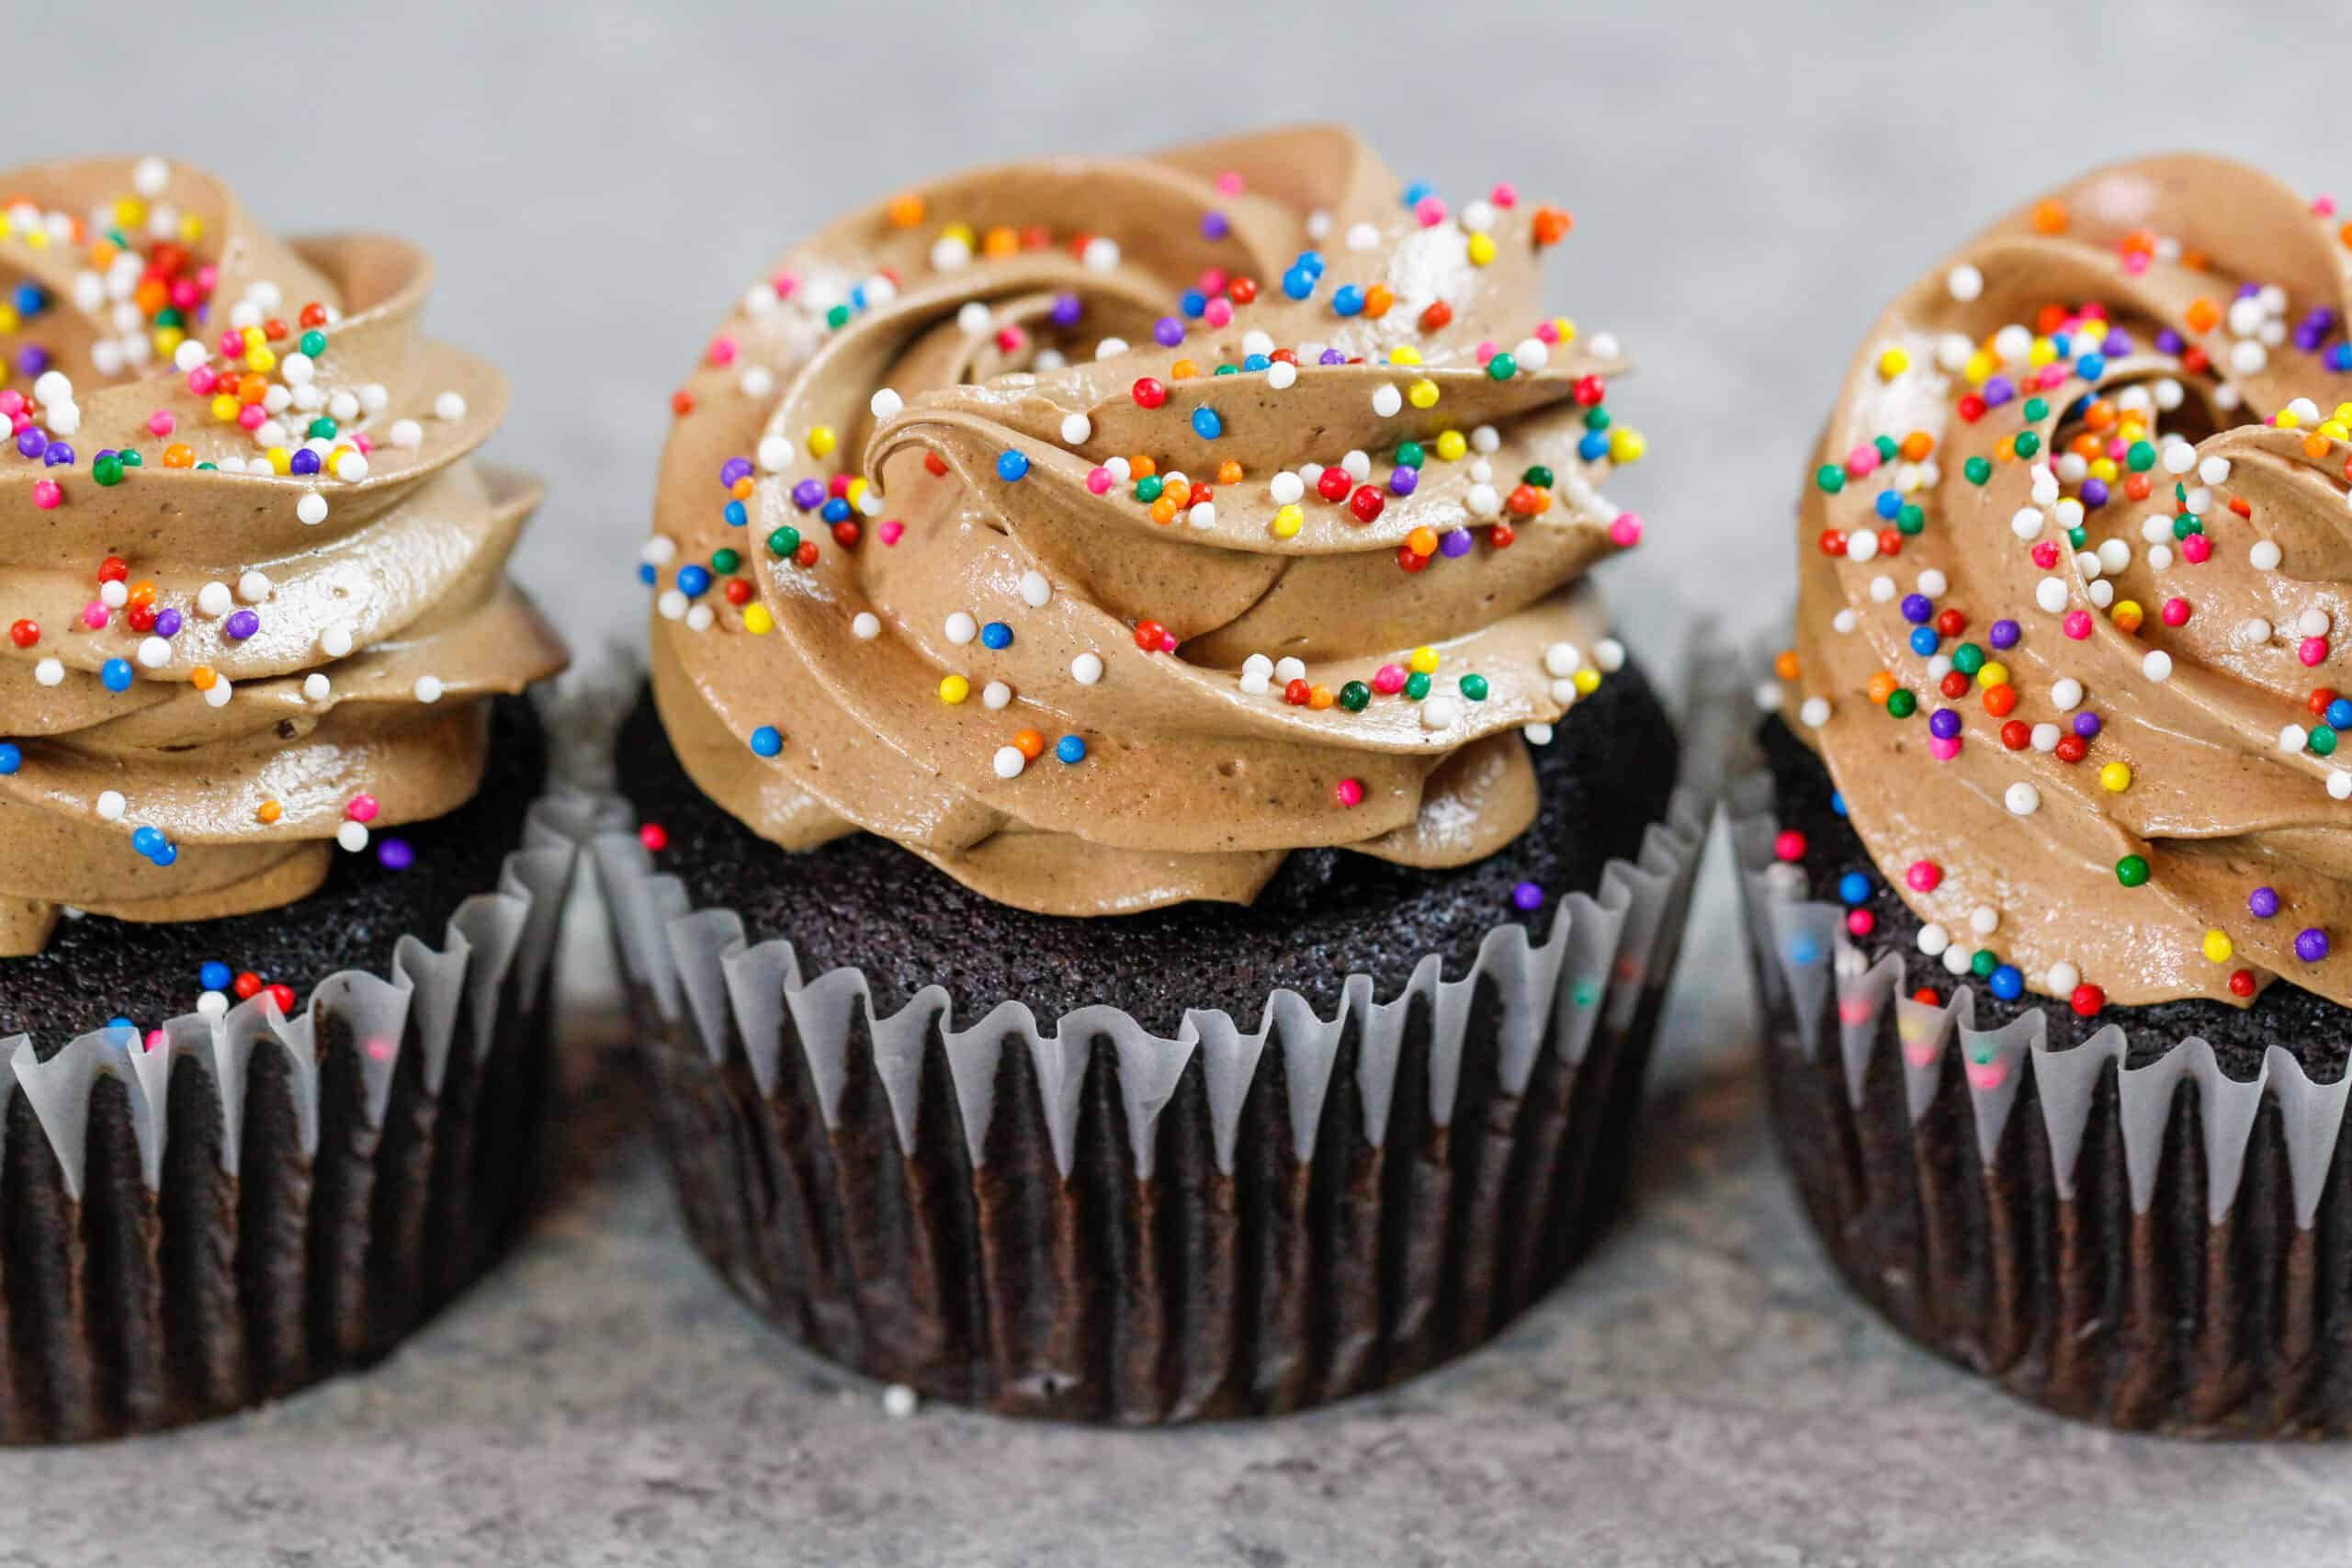 image of chocolate italian meringue buttercream frosted on top of chocolate cupcakes